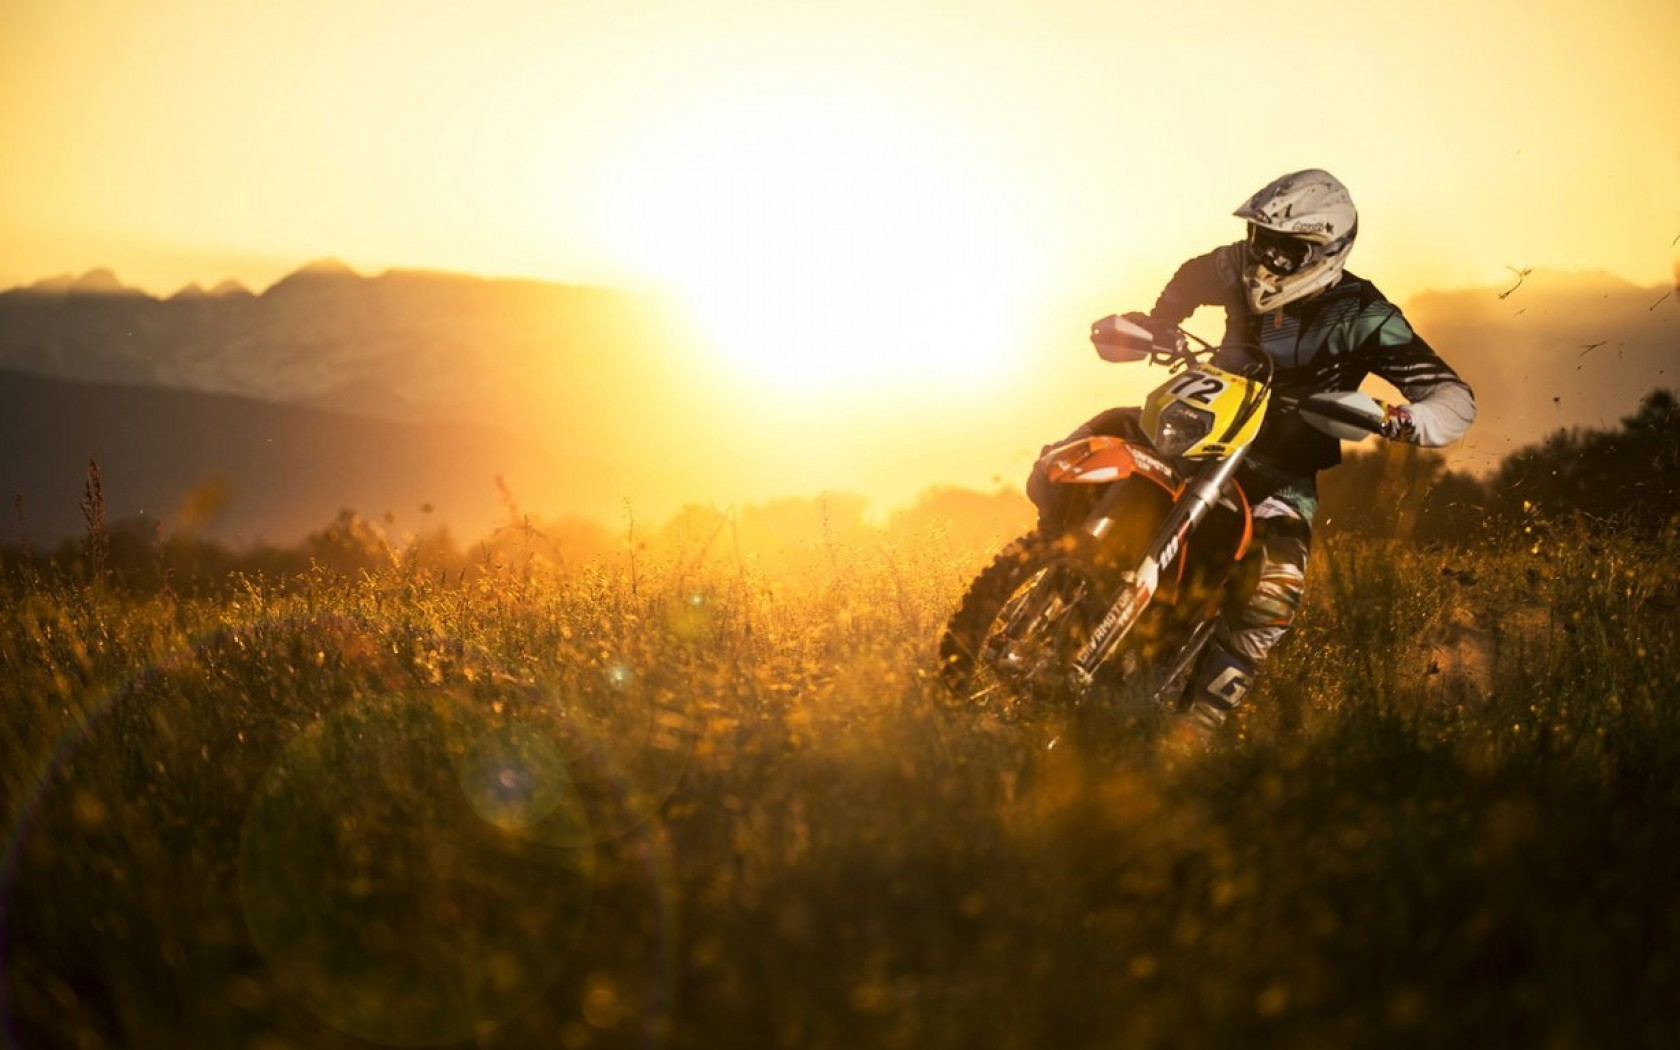 motocross photo hd